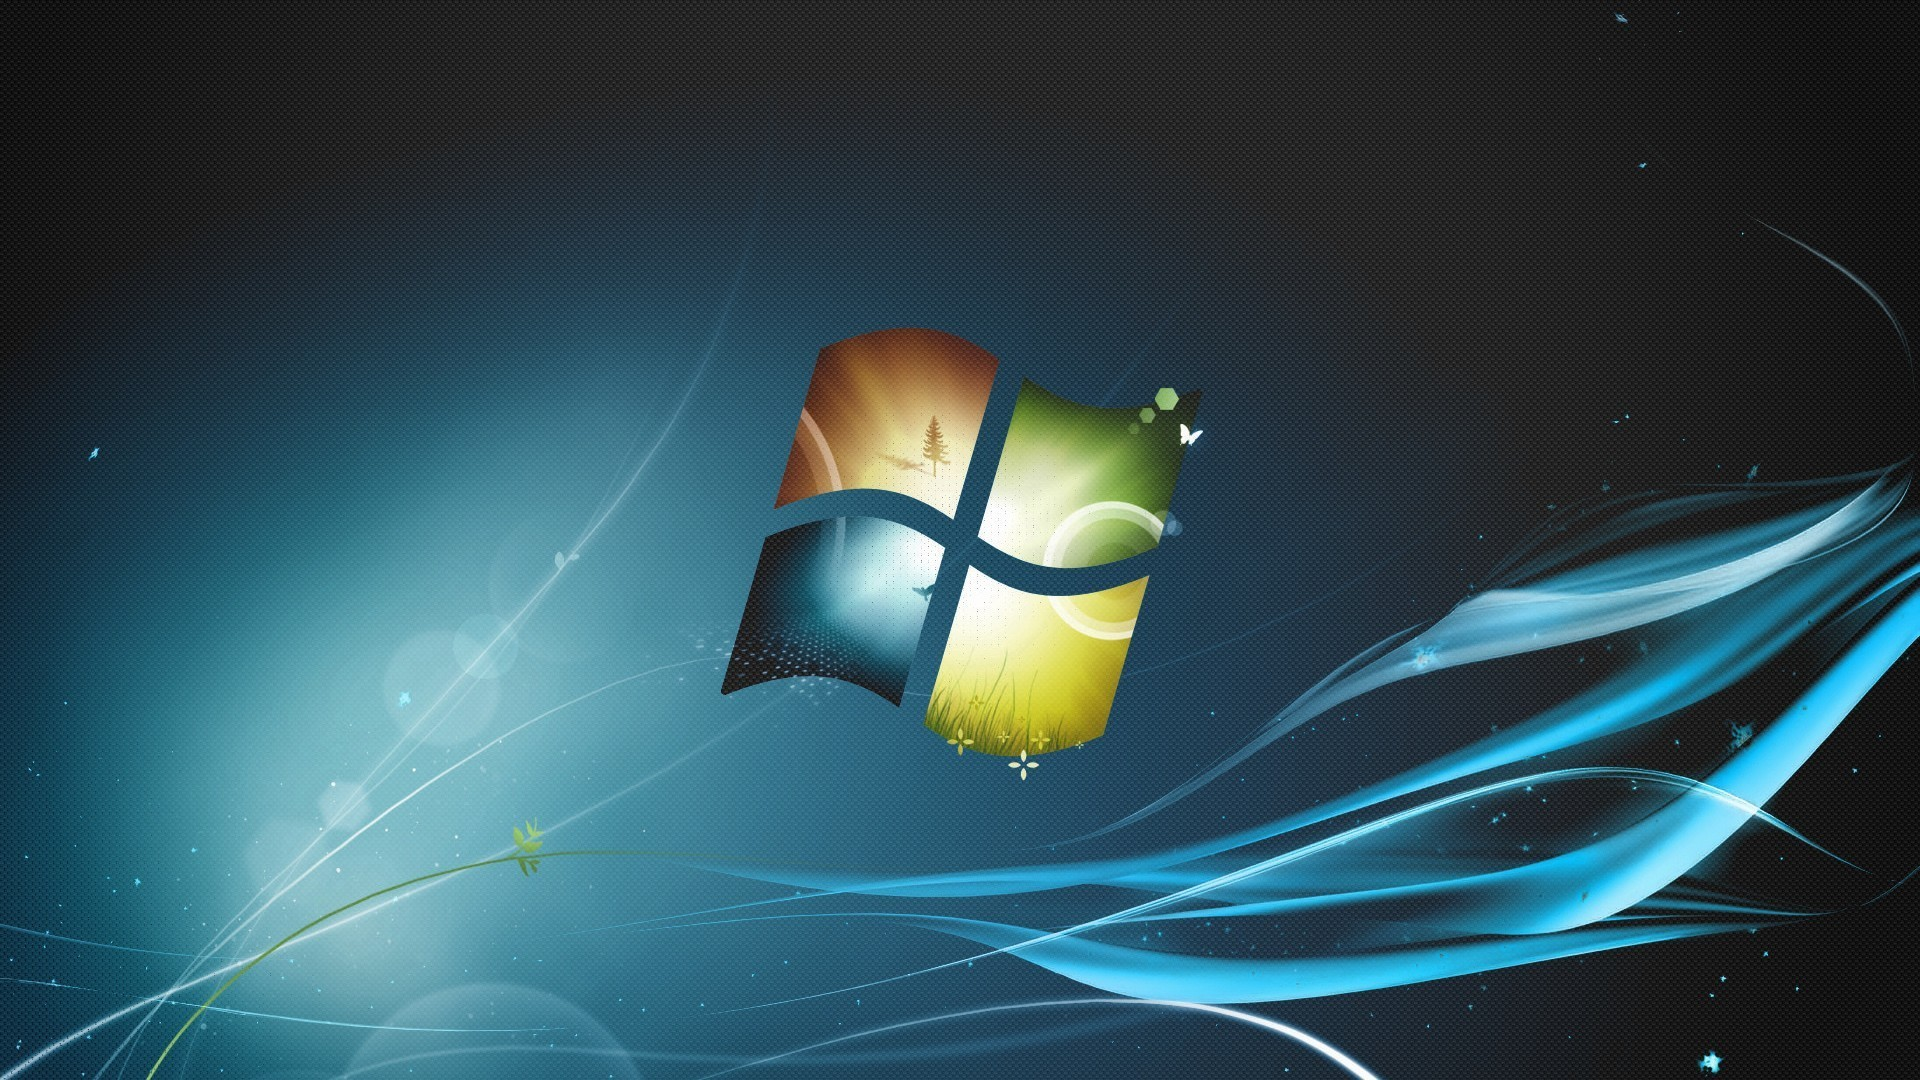 Windows 7 wallpaper morto